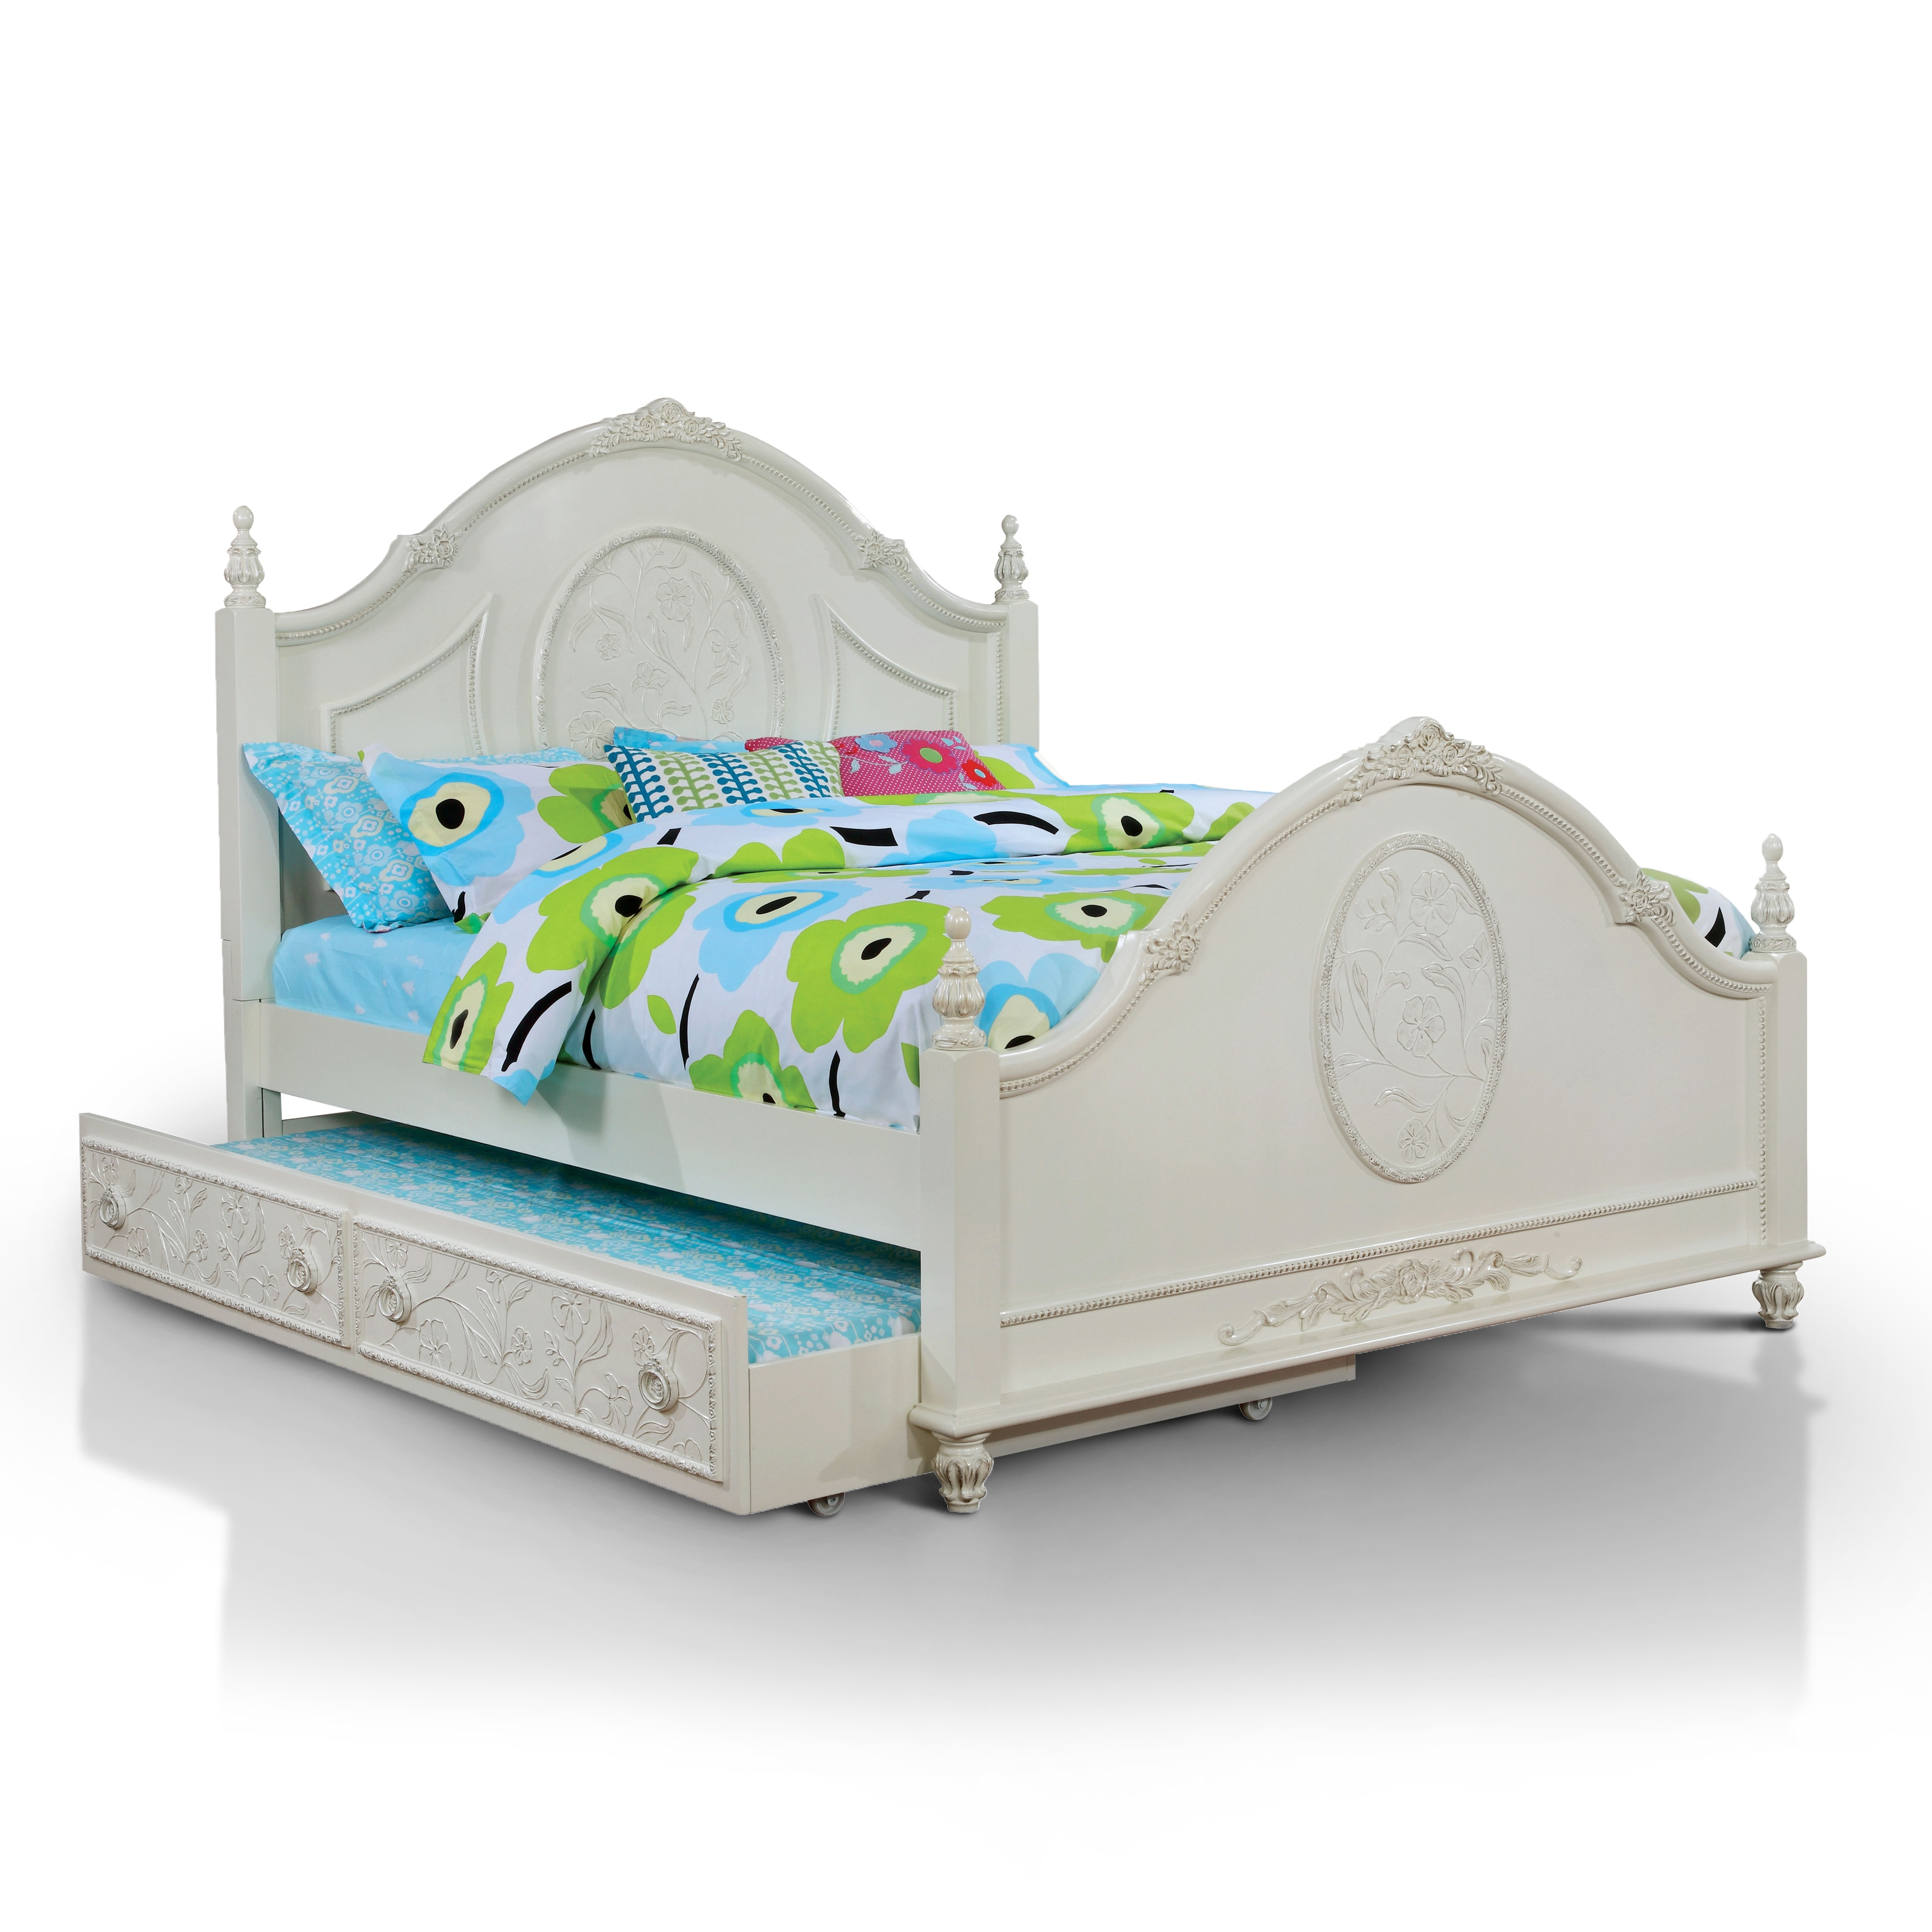 Furniture of America  Margie Traditional Elegant Fairy Tale Style Floral Poster Bed with Trundle Full Size